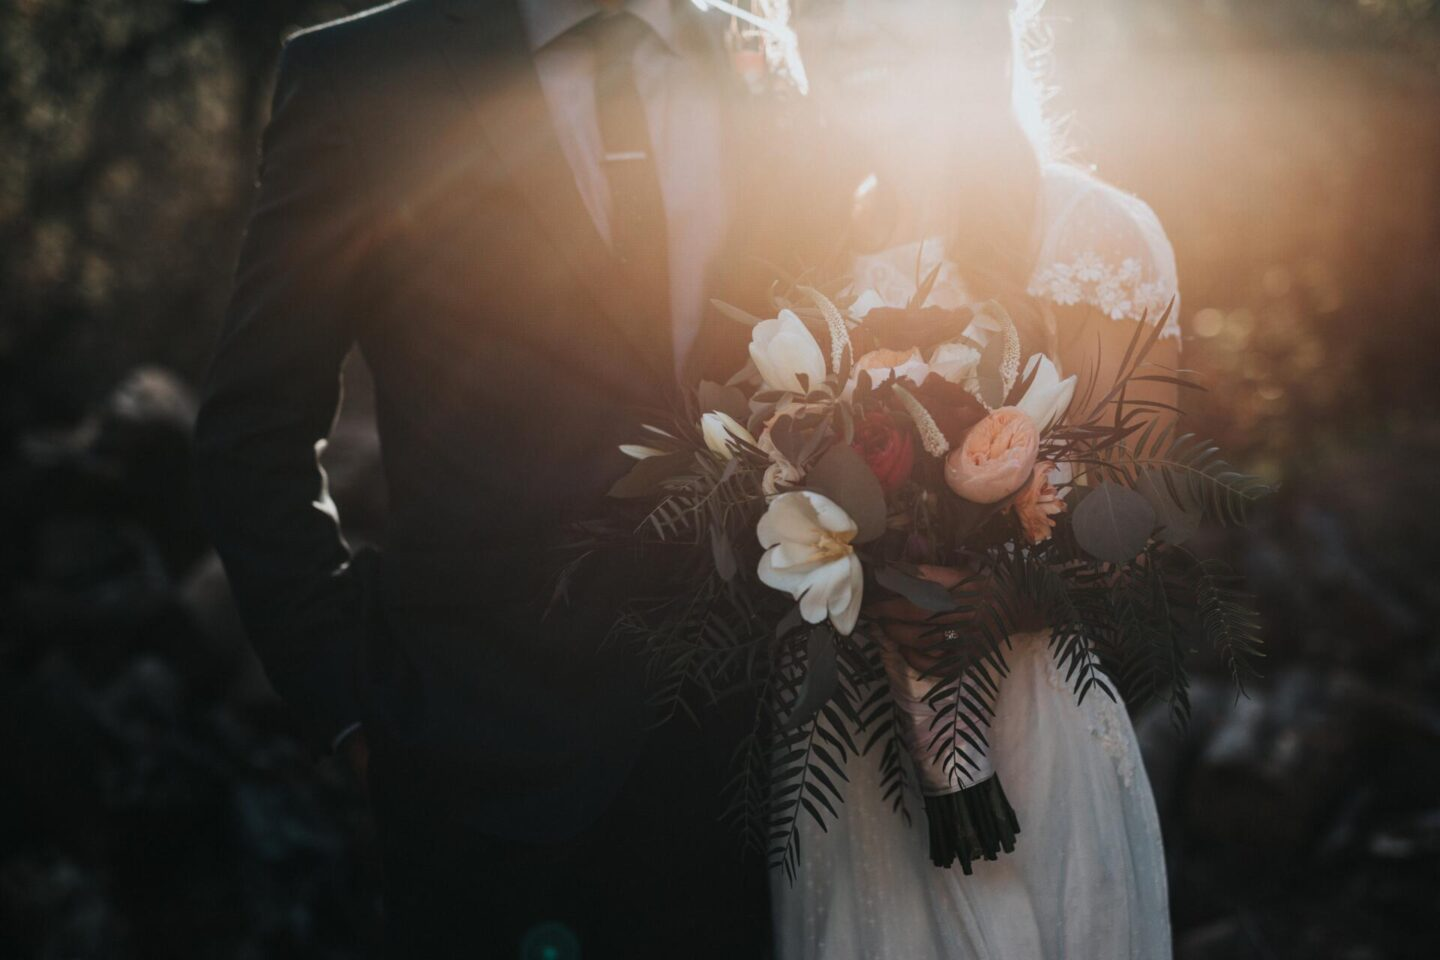 Attending Your Child's Wedding | How To Make The Most Of This Amazing Experience